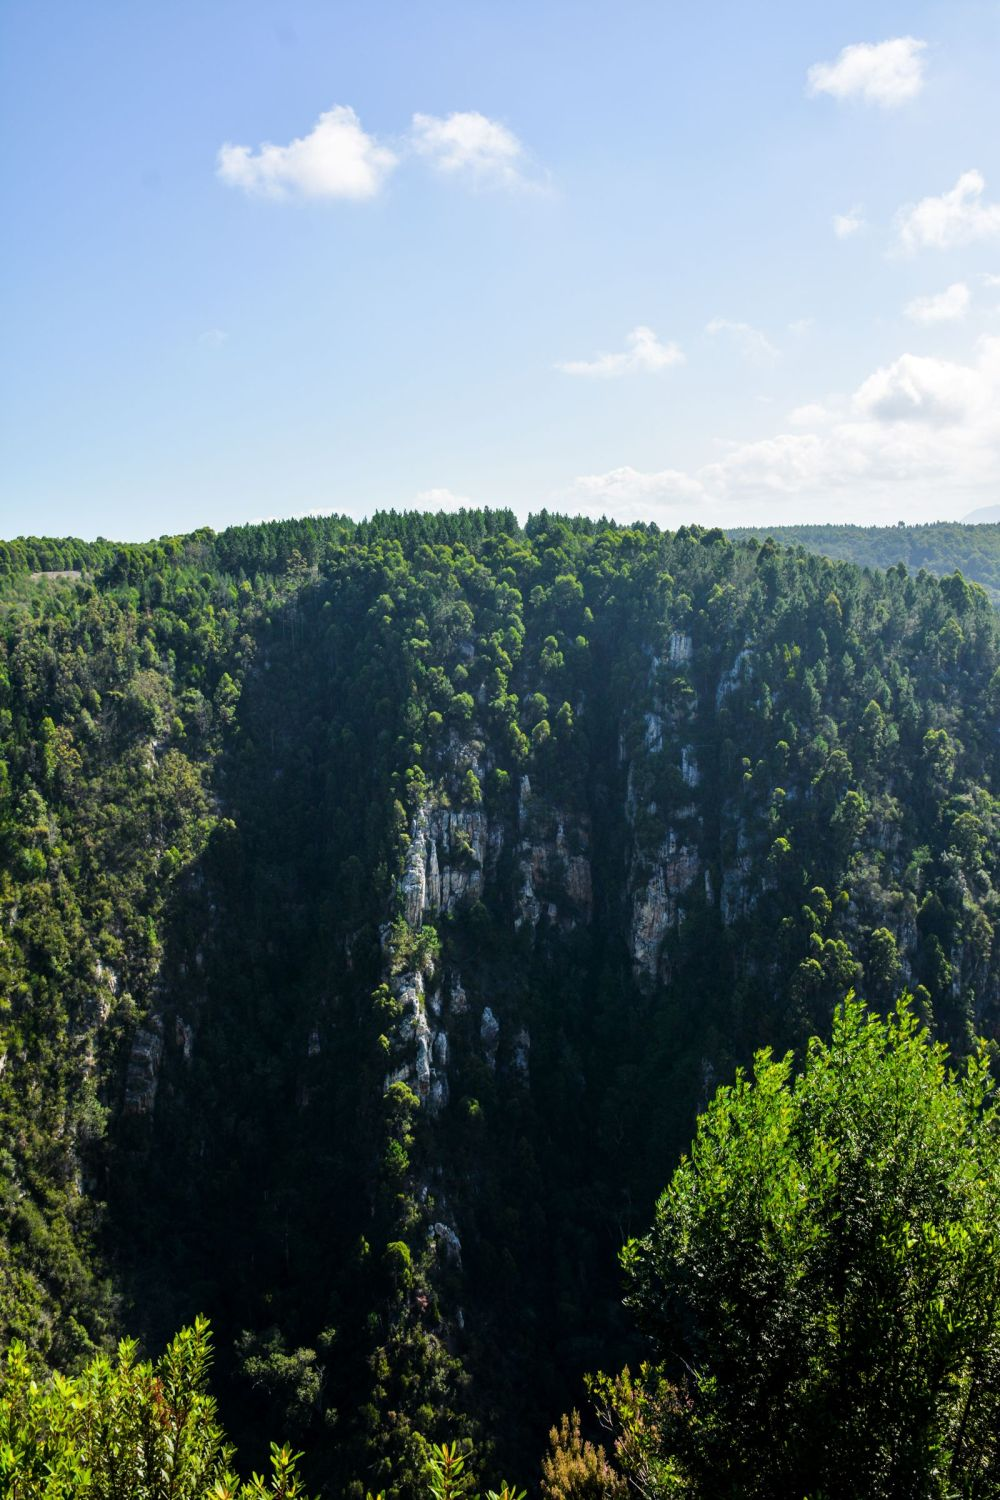 Eastern Cape Adventures In South Africa: Wines, 1,000 Year Old Trees And The Tallest Bungee In The World! (8)